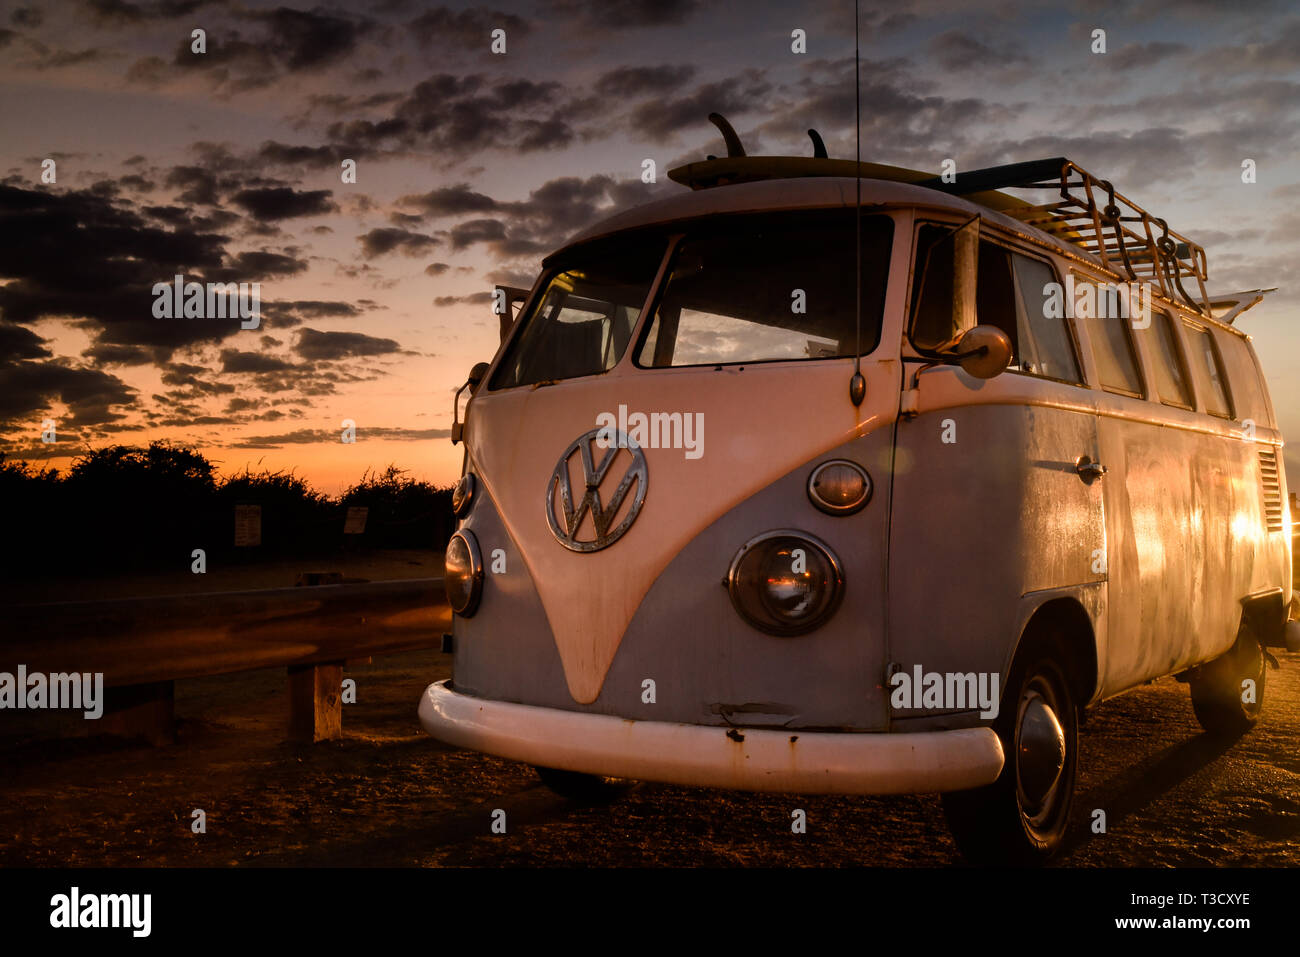 Vintage Volkswagon VW Microbus with rooftop rack for surfboards, parked along cliffs at Sunset Cliffs, San Diego, CA, USA Stock Photo